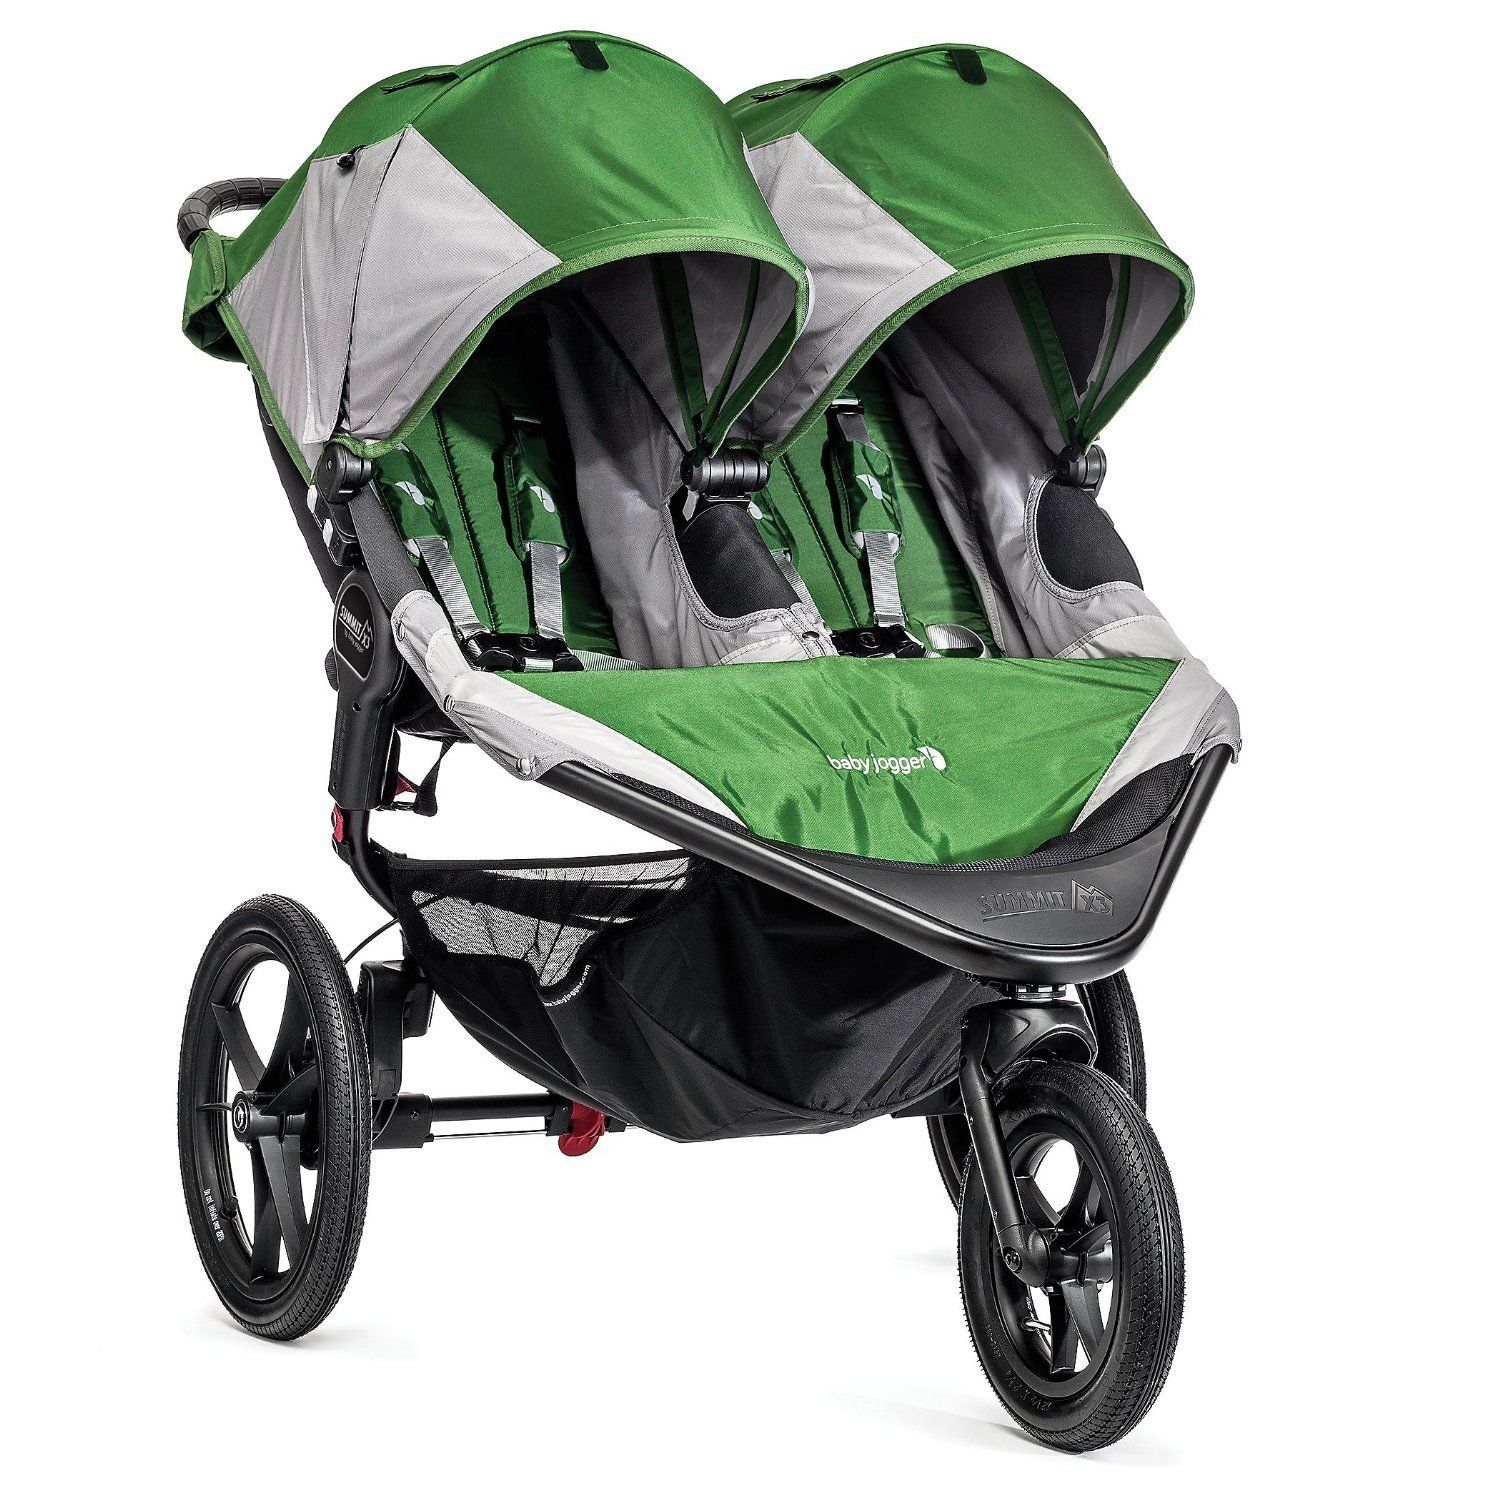 The Baby Jogger Summit X3 Double Stroller offers extraordinary execution and mobility on any landscape while